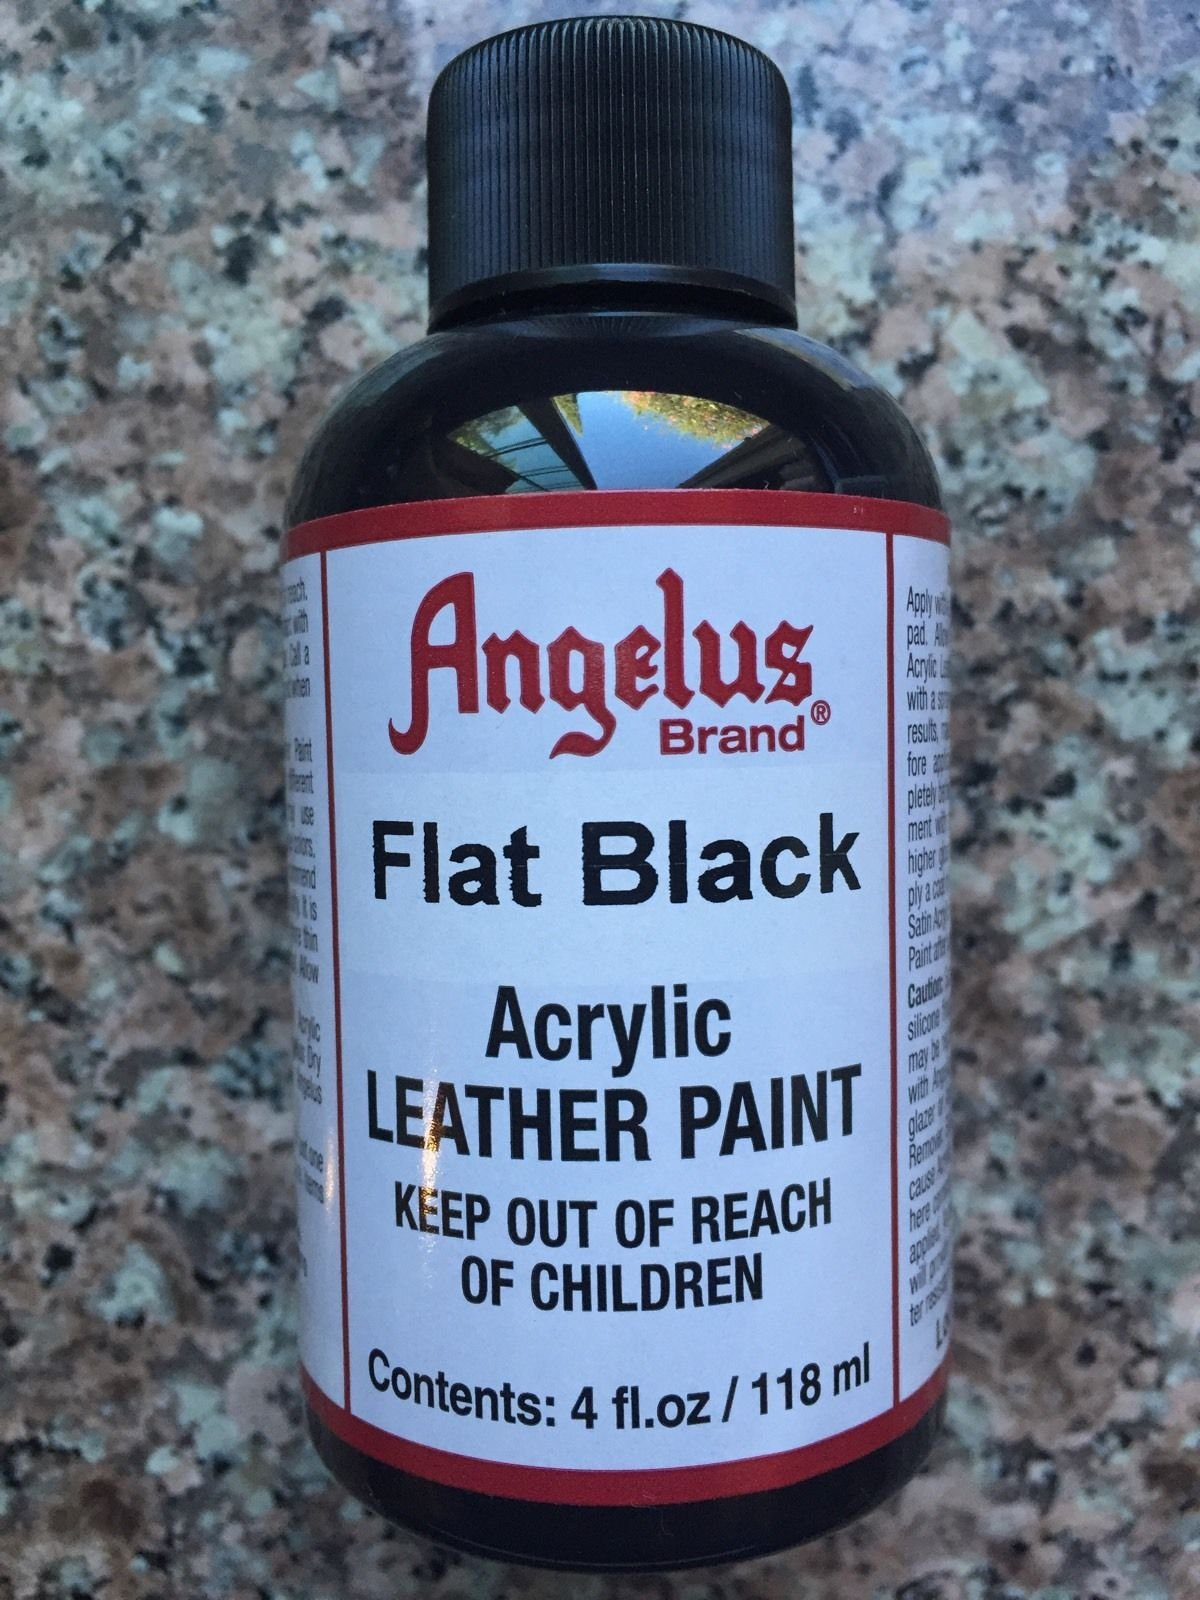 (Ship from USA) Angelus Flat Black acrylic leather paint in 4oz bottle *GWE849F EP-21RT17753